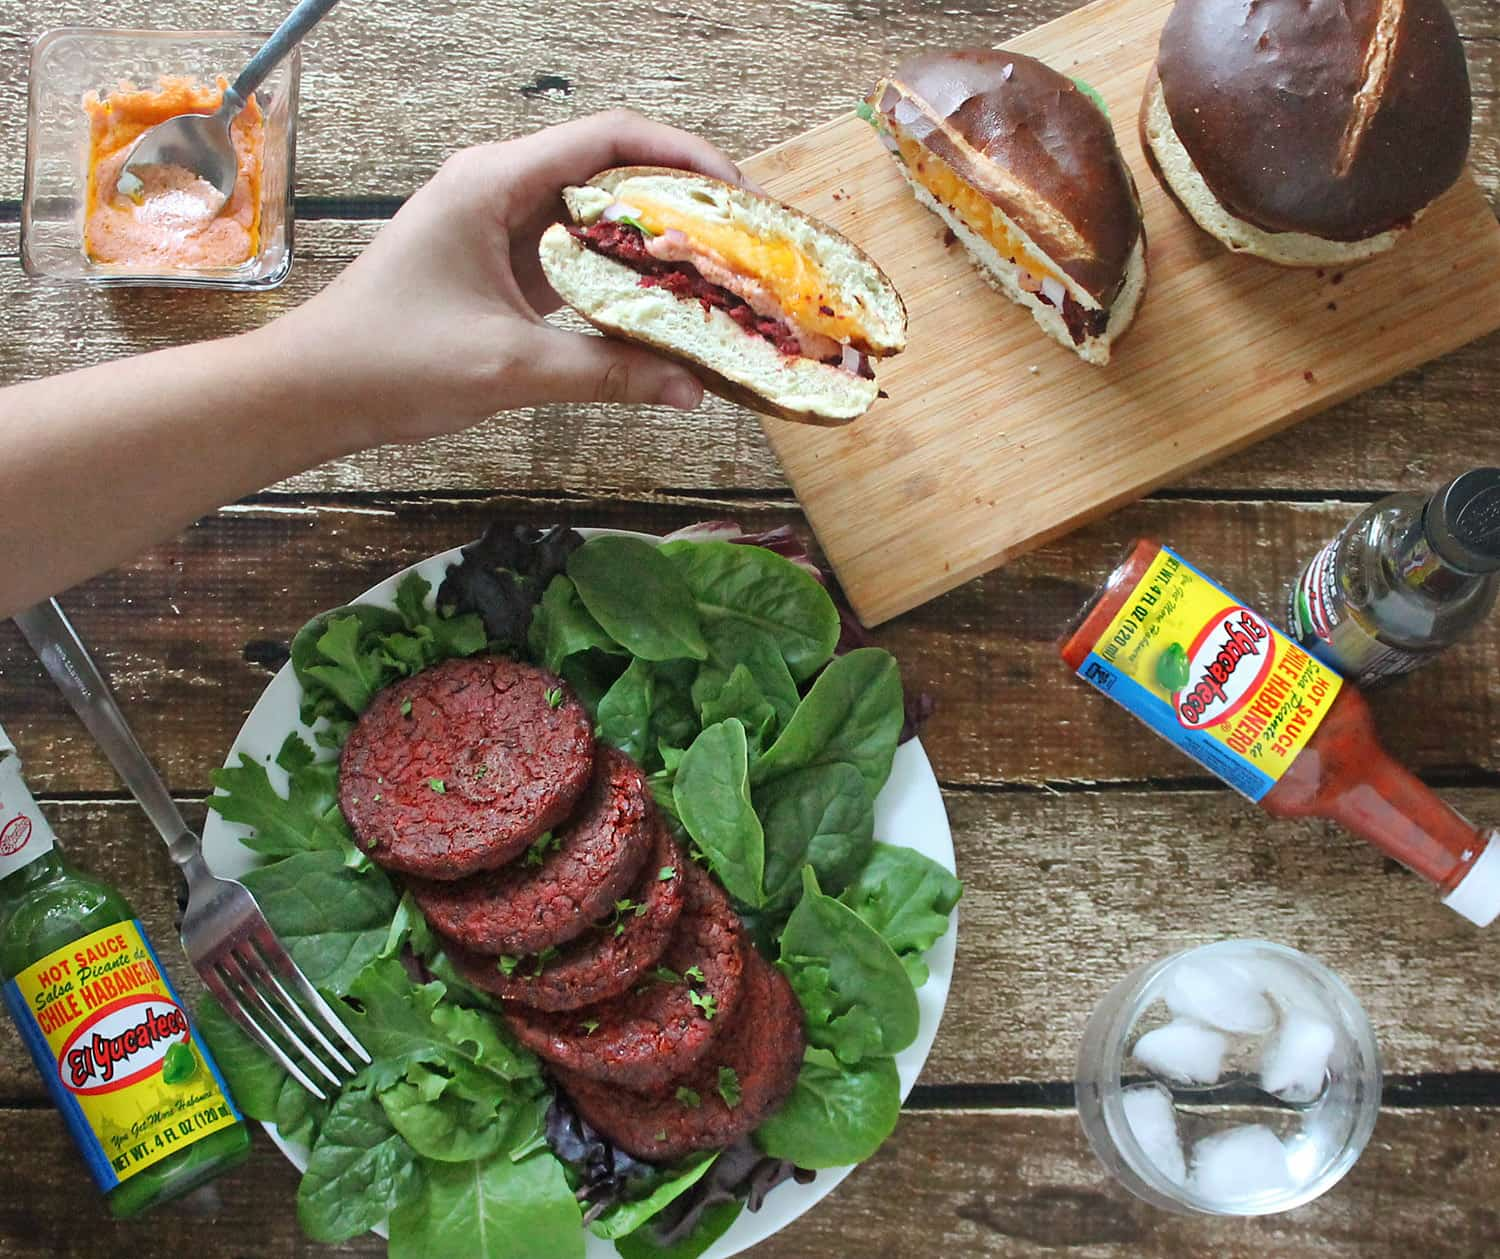 Beet & Bean Burgers with El Yucateco Hot Sauce